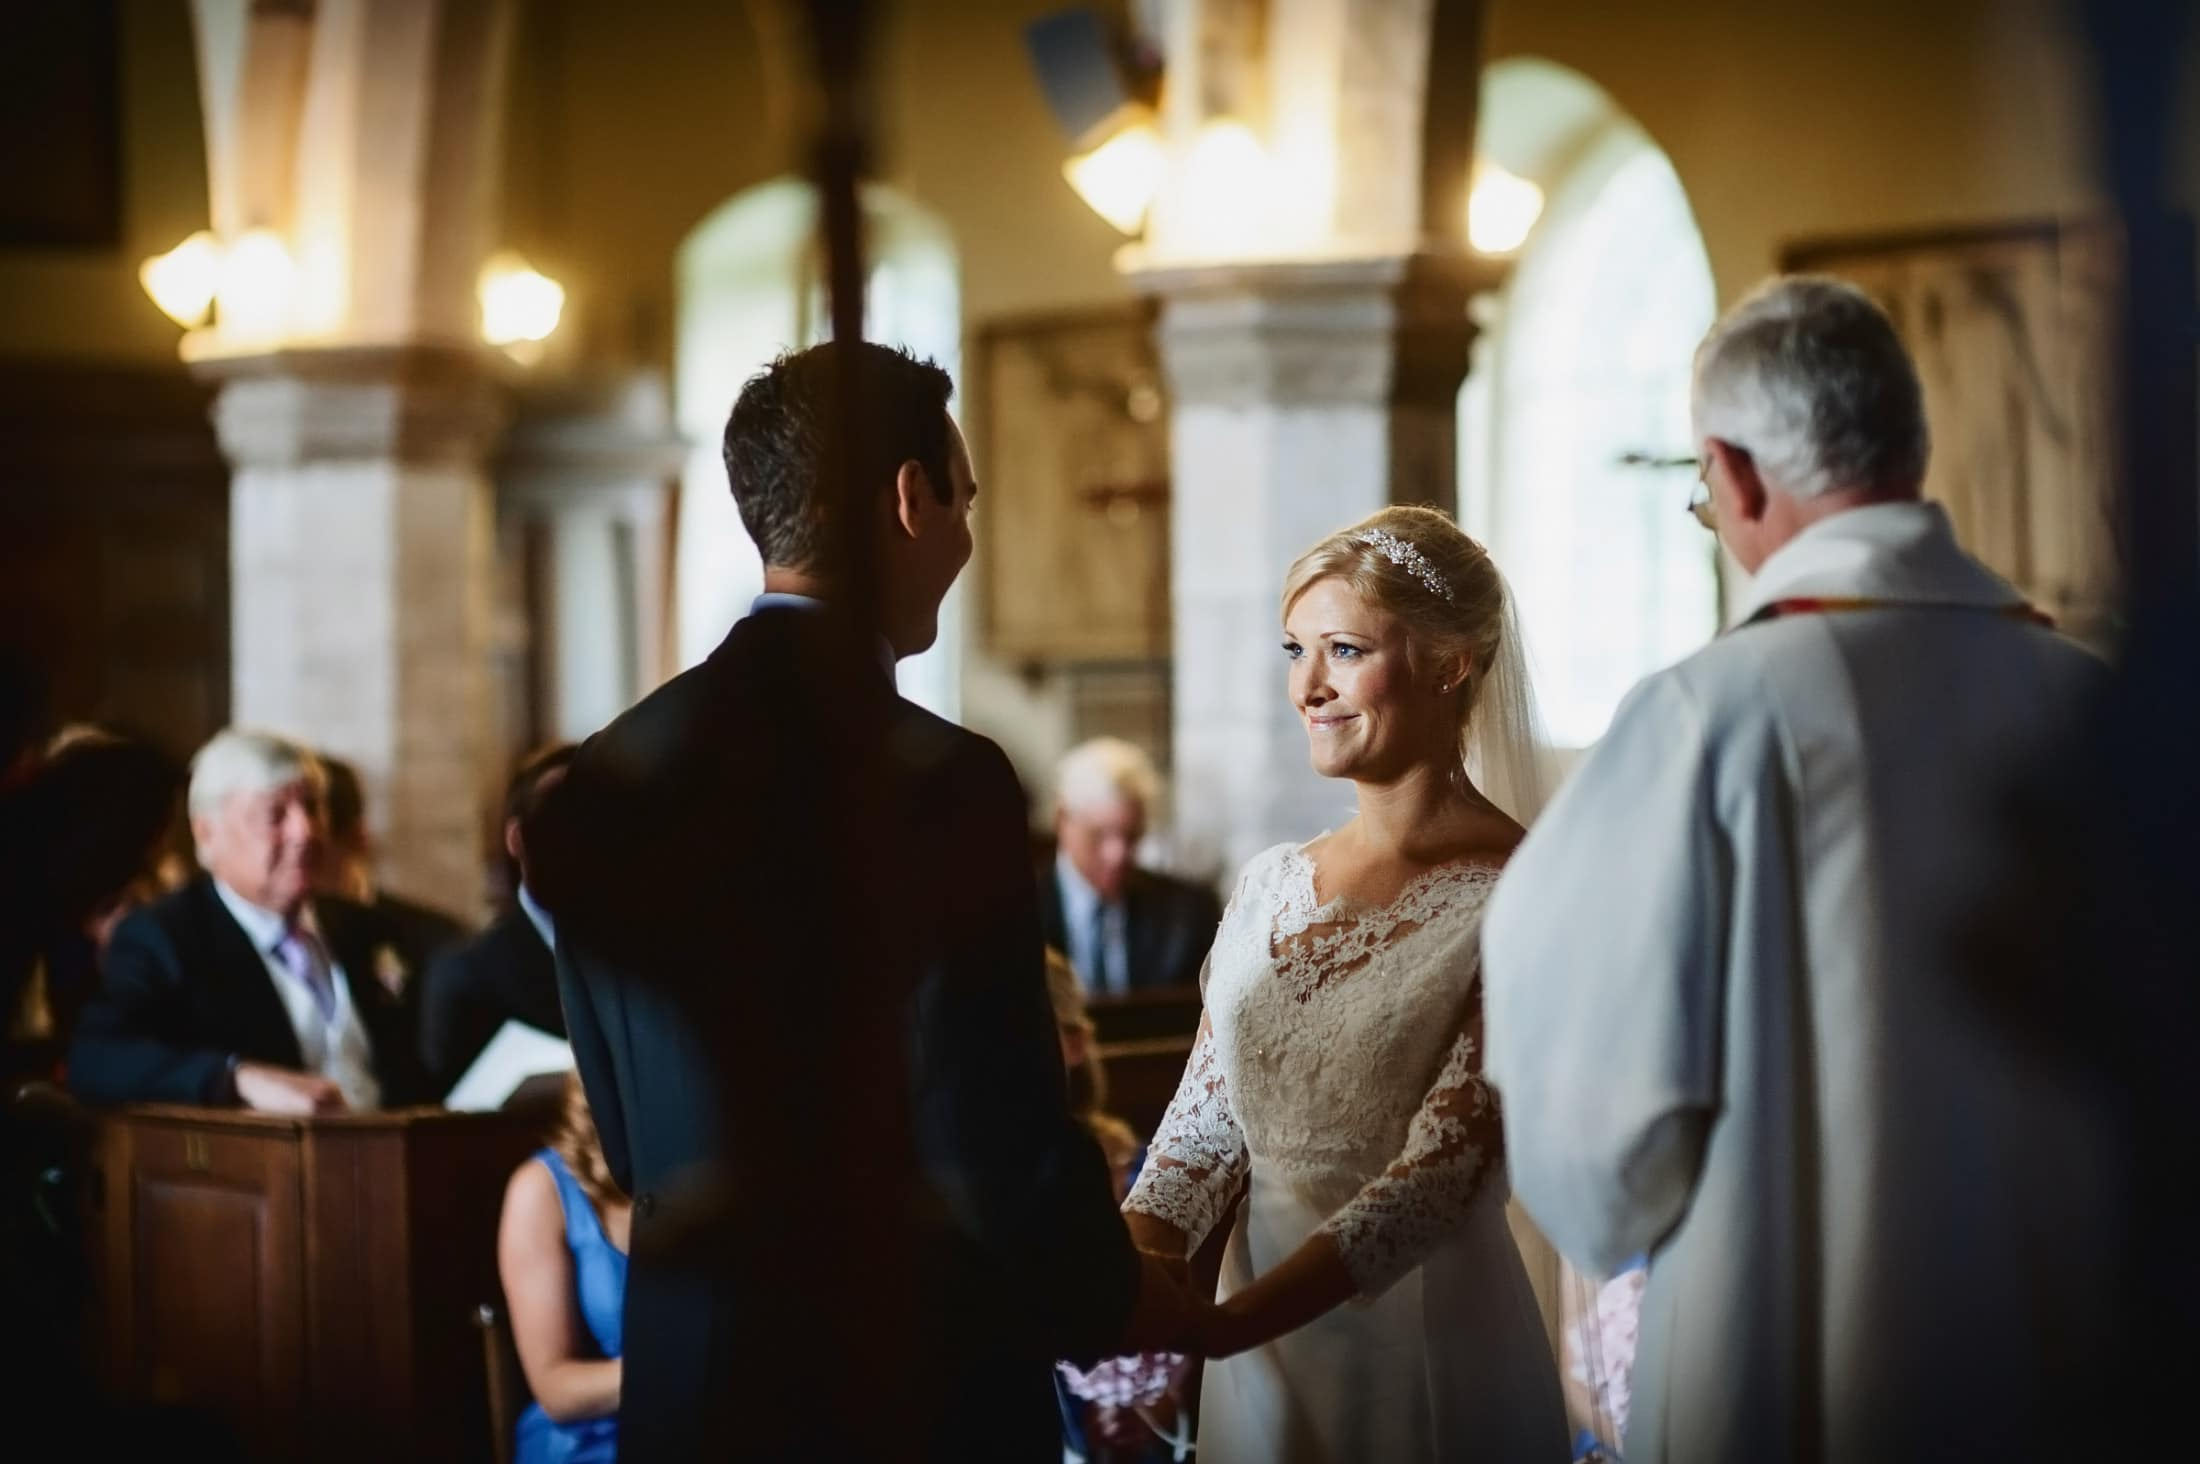 Bride smiling as groom reads wedding vows in church